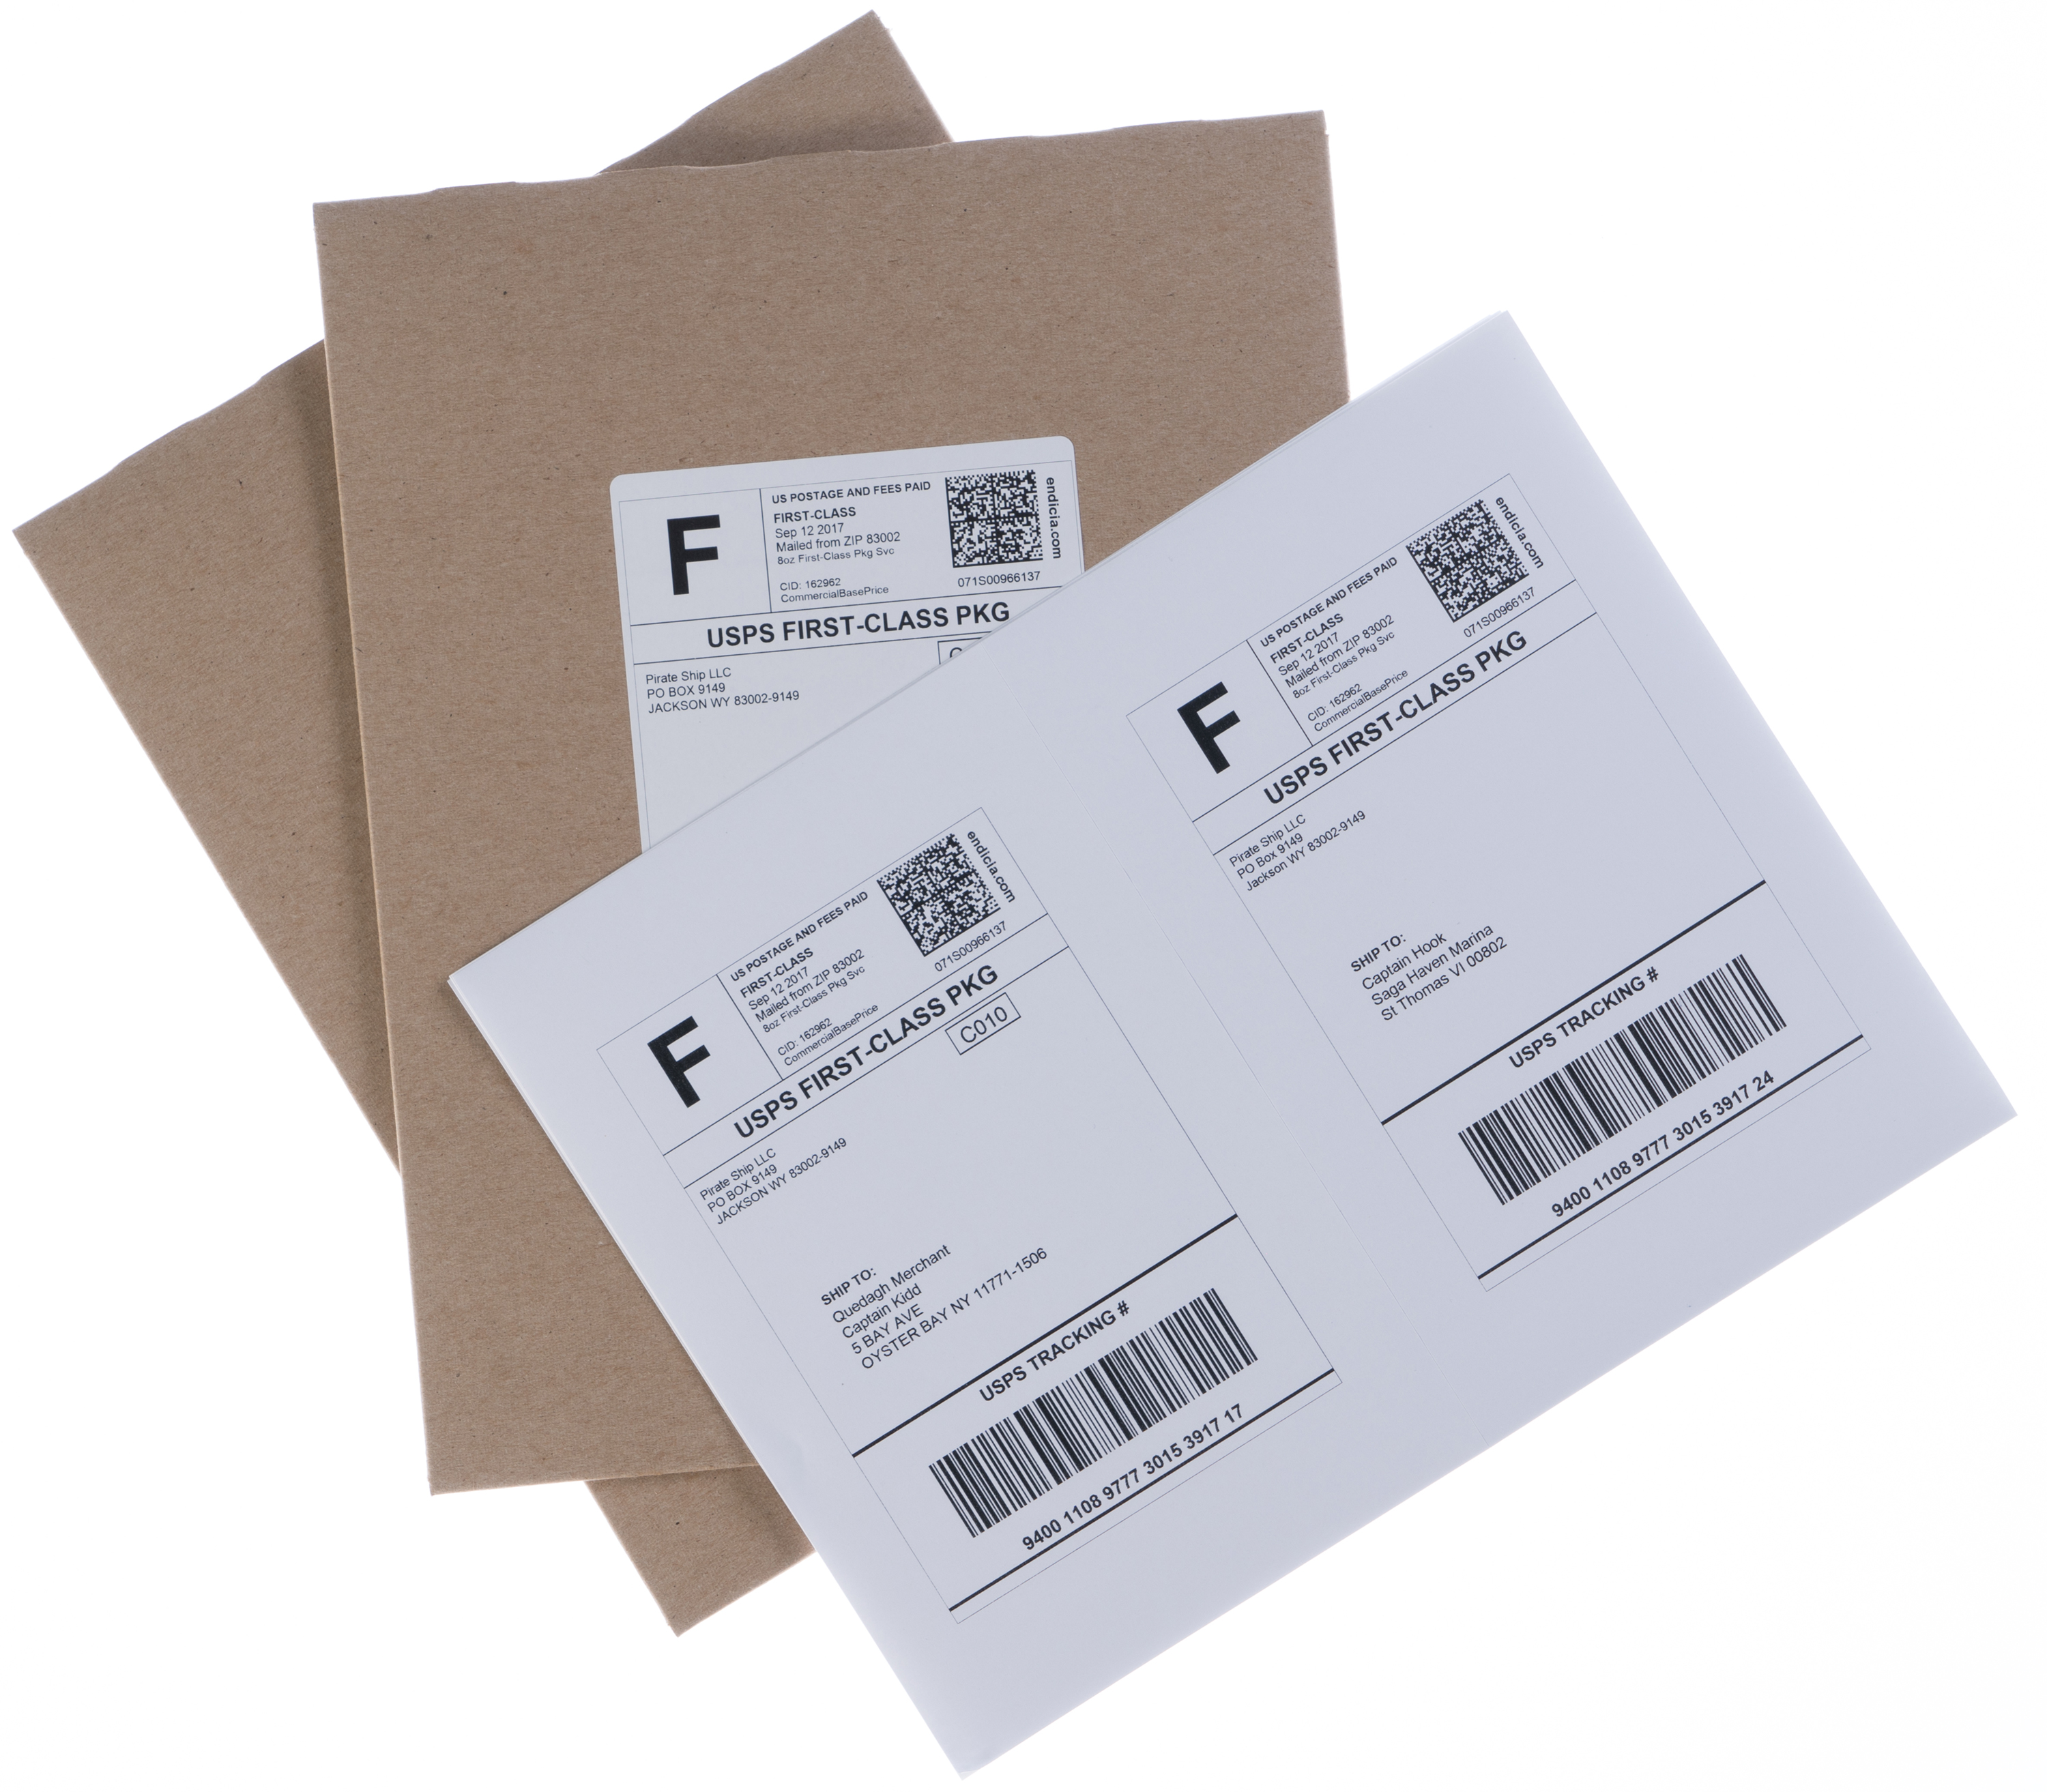 First Class Package shipping labels and envelopes